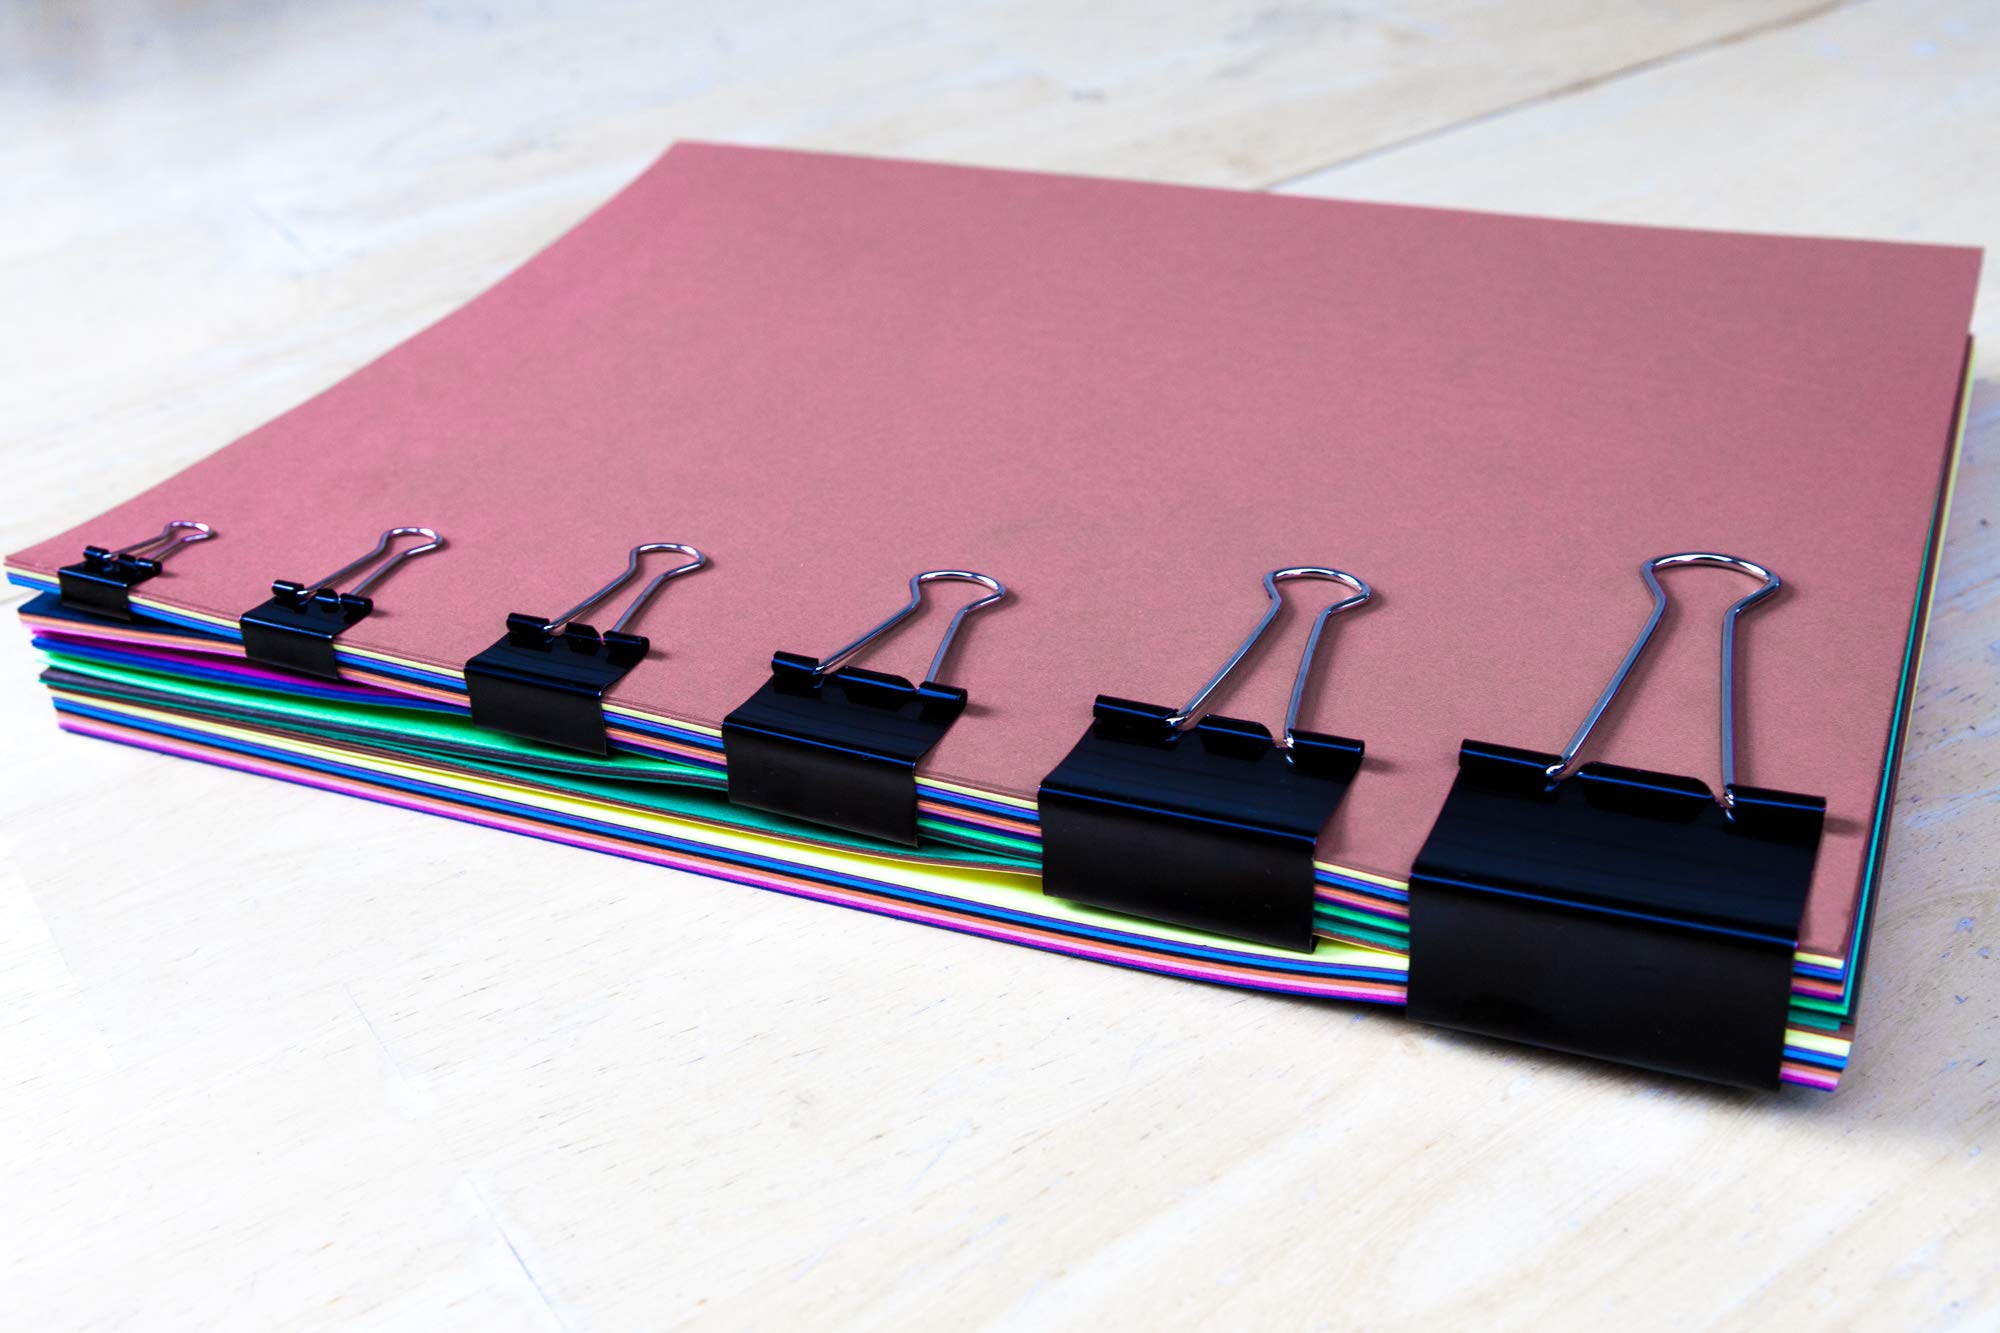 Loon Online Binder Paper Clips, Assorted Sizes (Black, 100 Per Box) by Loon Online (Image #5)